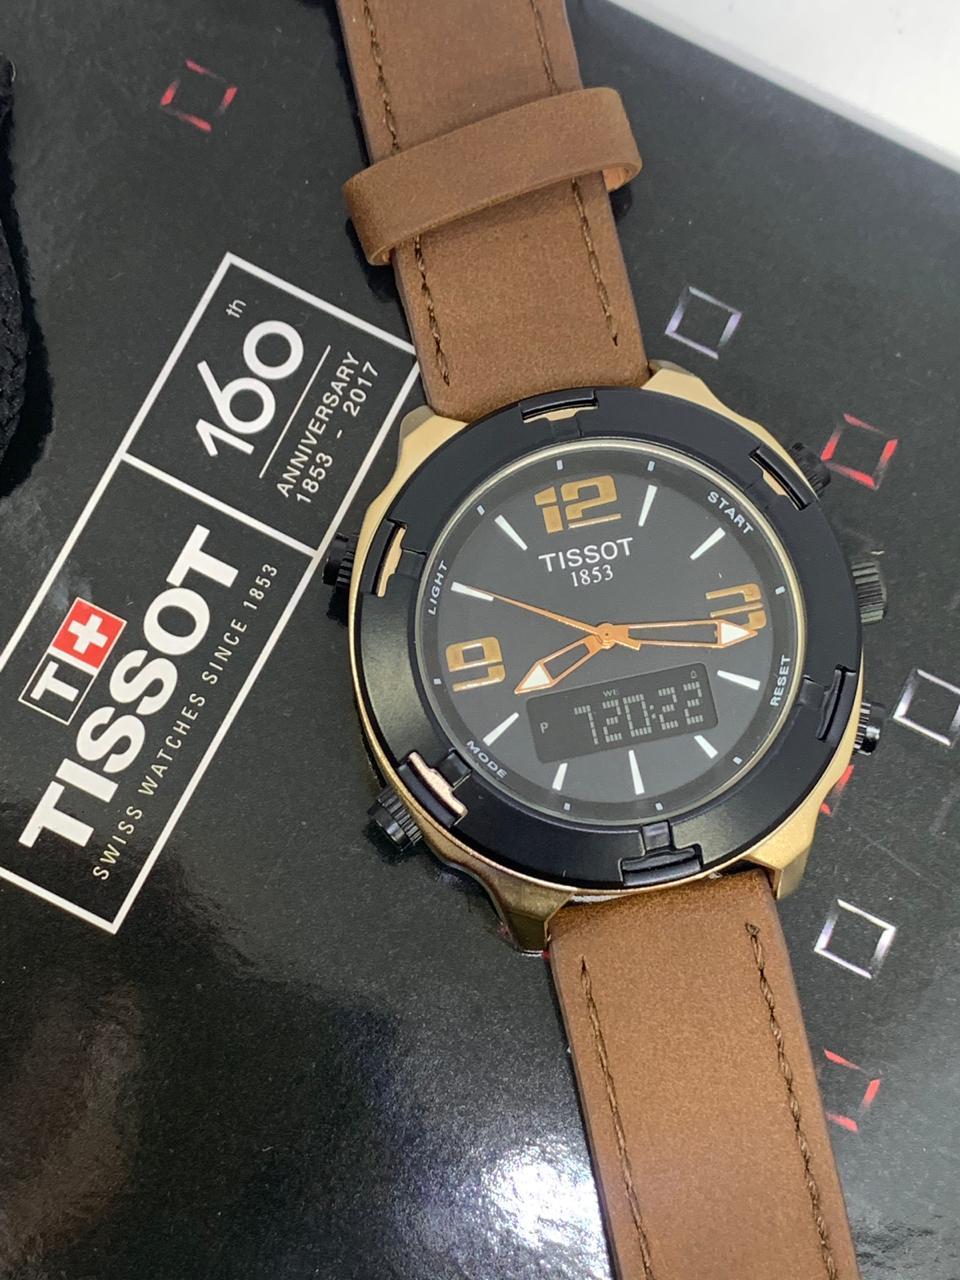 Tissot digital watch refubrished - lallntop.com